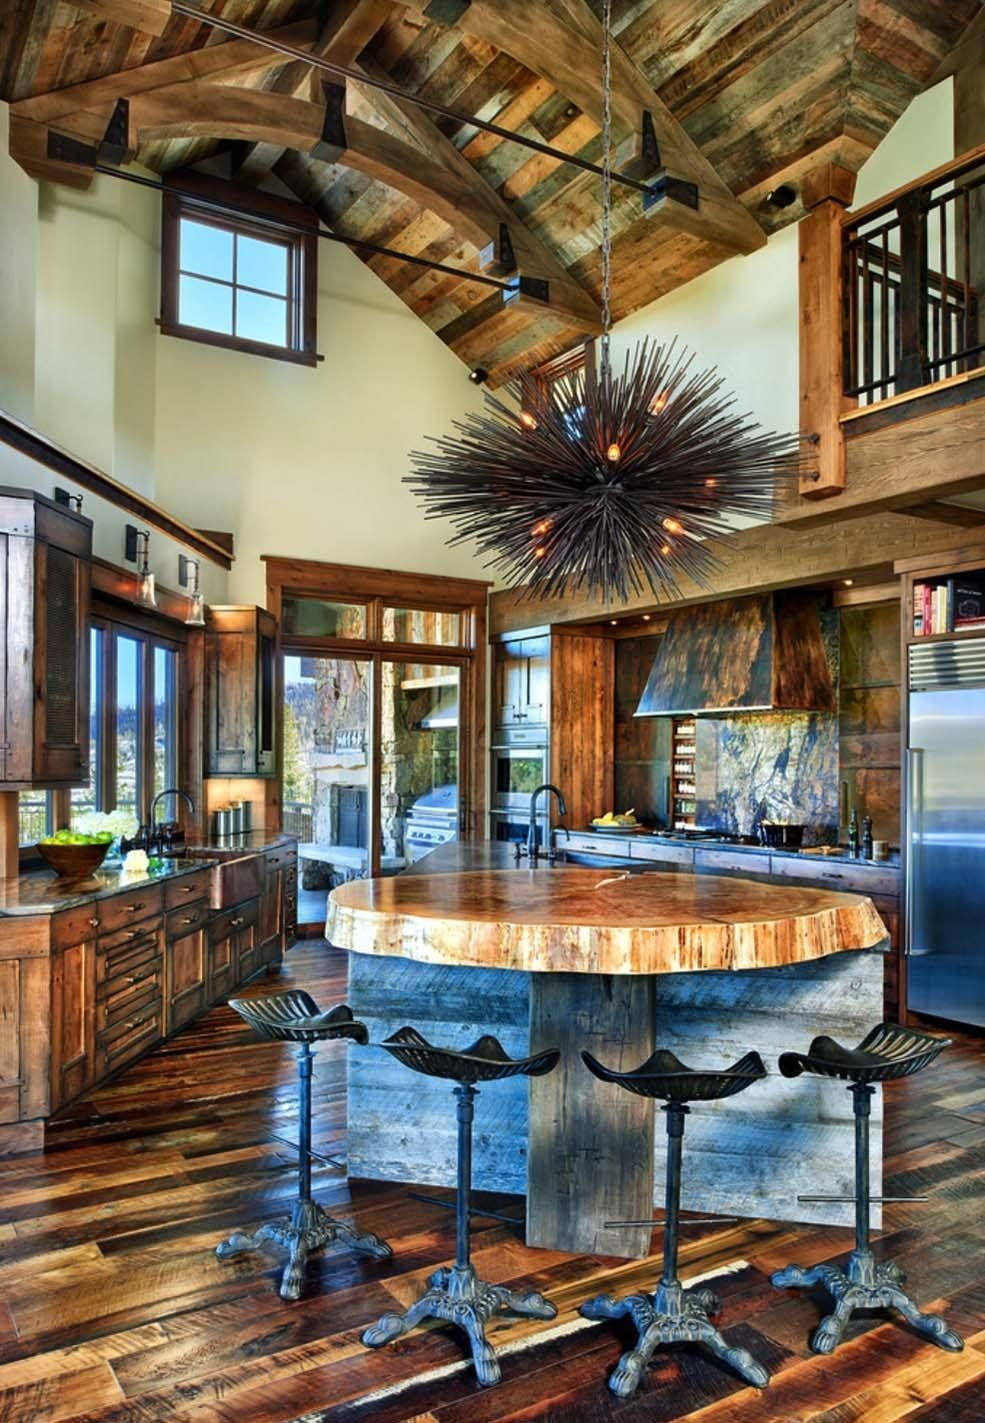 Rustic ranch house in Colorado opens to the mountains | Pinterest ...